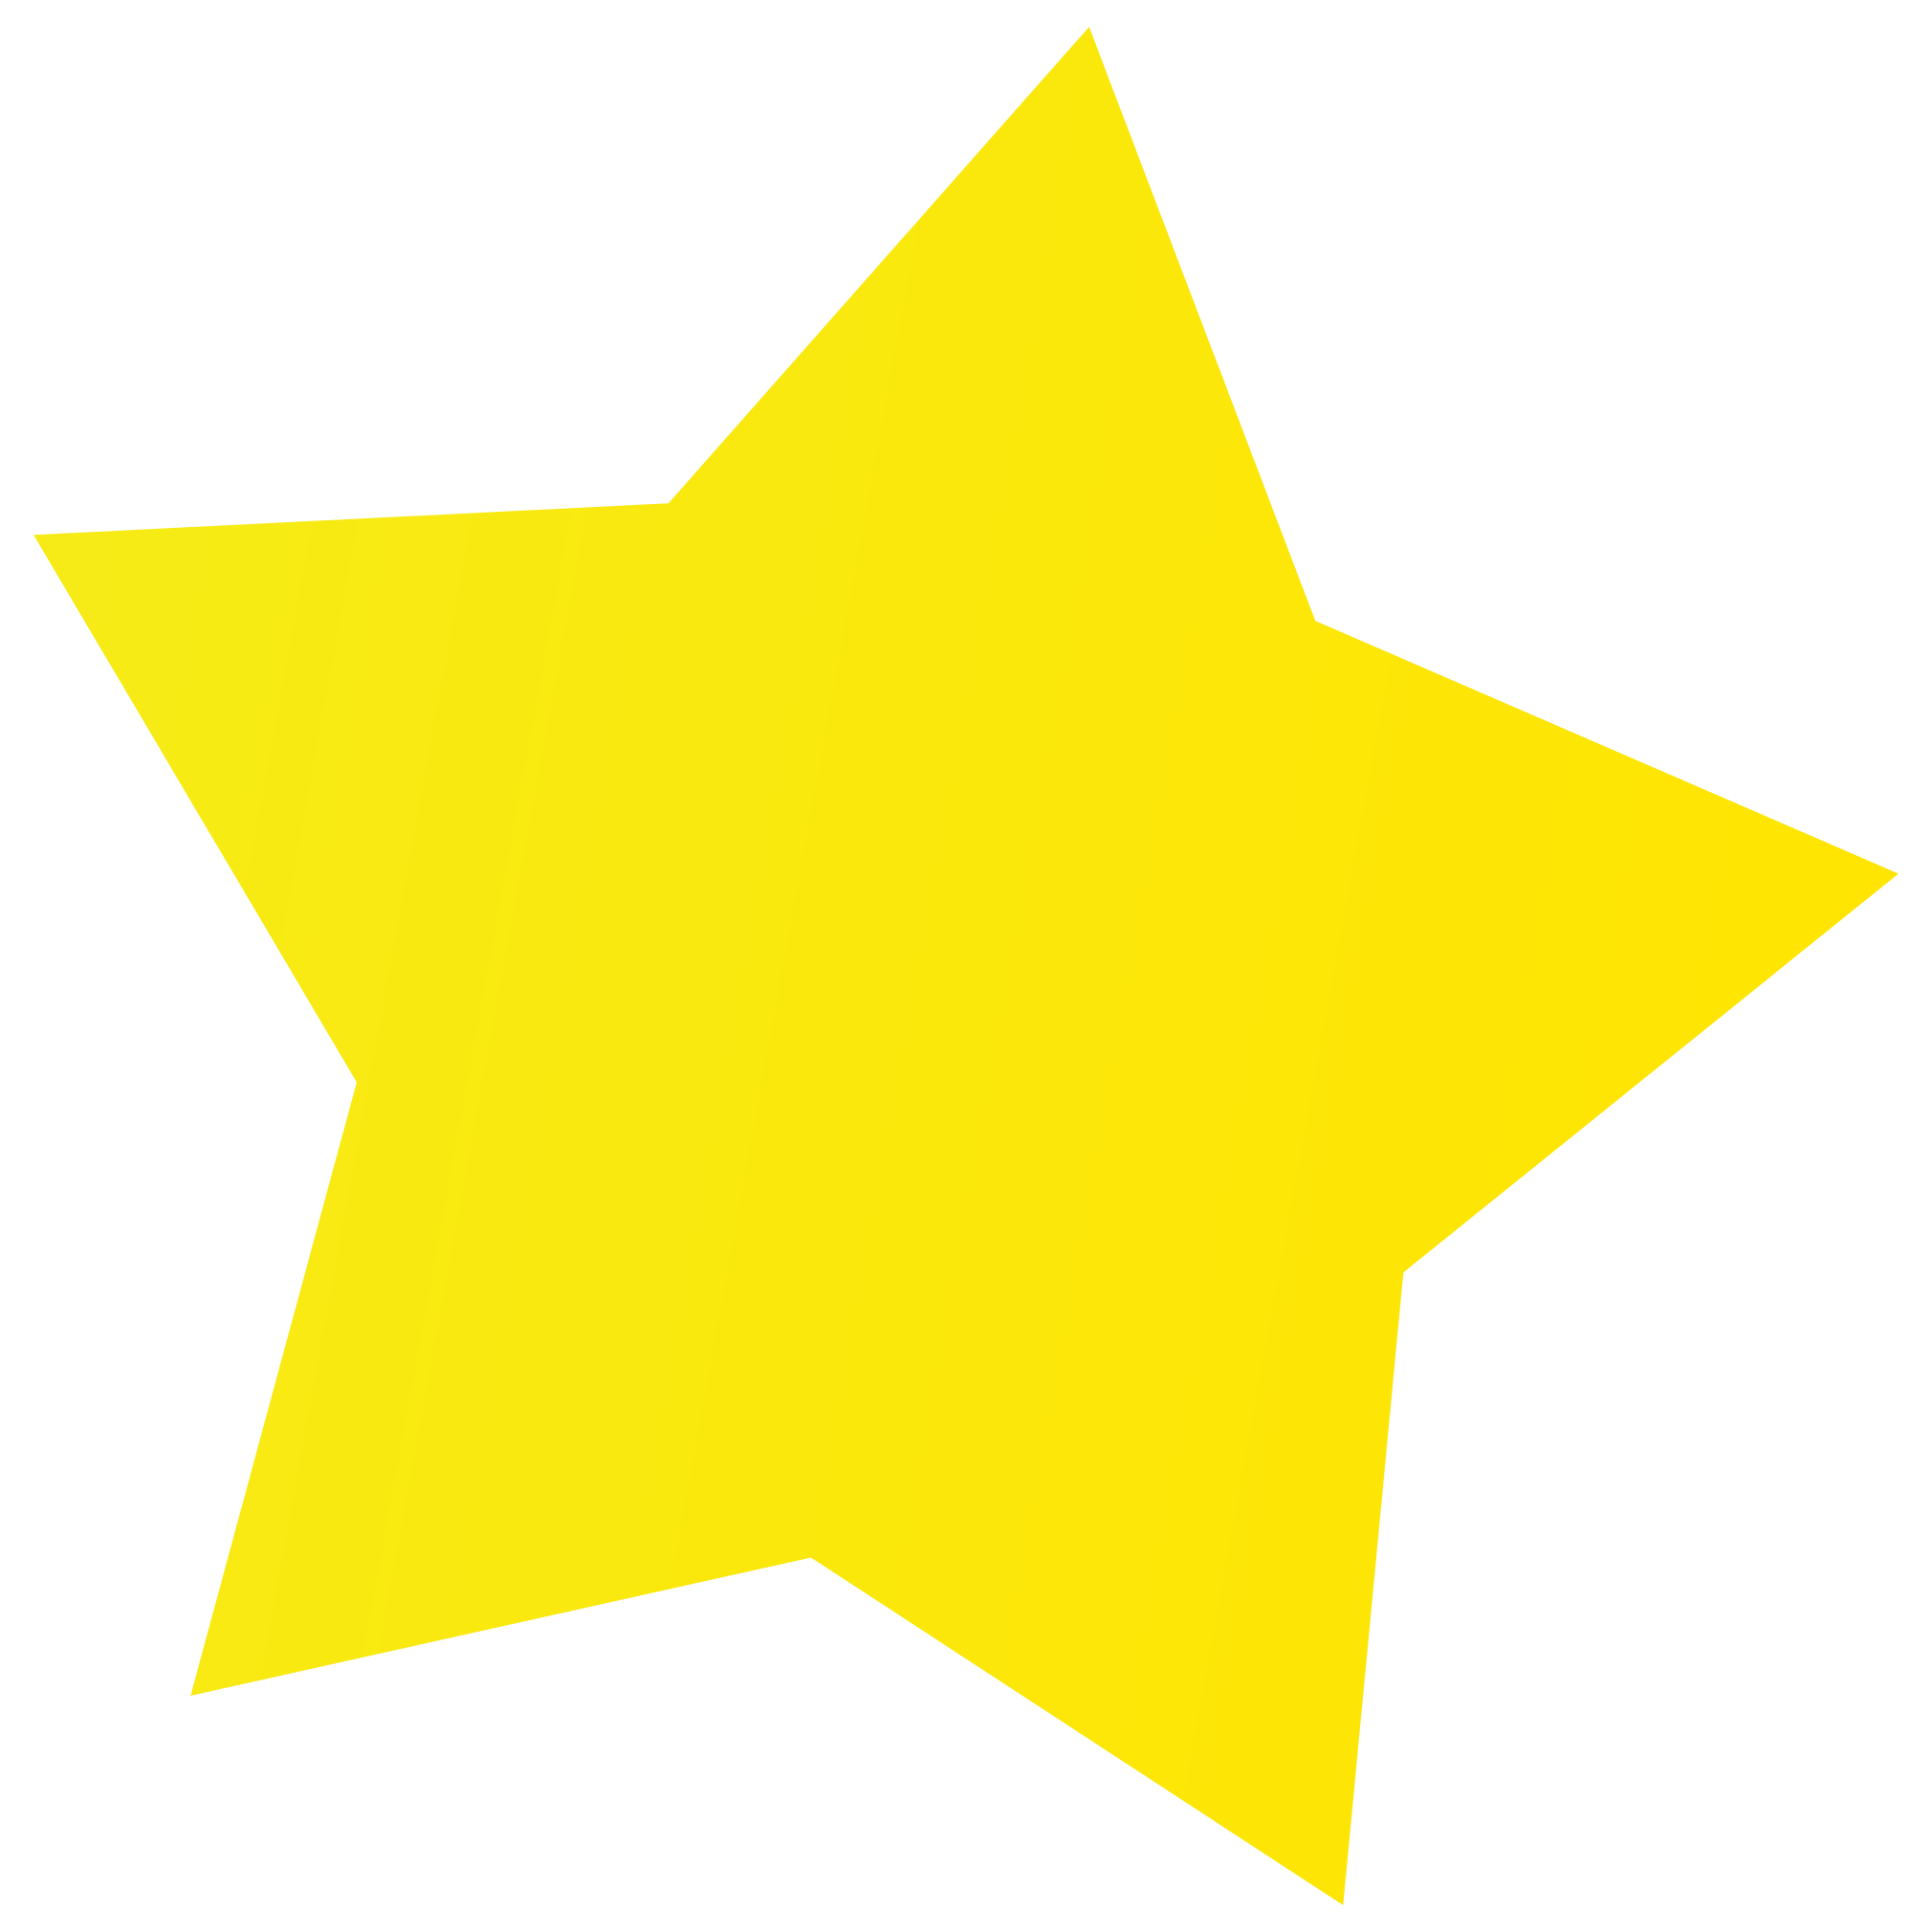 Clip Art Star Png Clipart Best Image #616 - Star, Transparent background PNG HD thumbnail